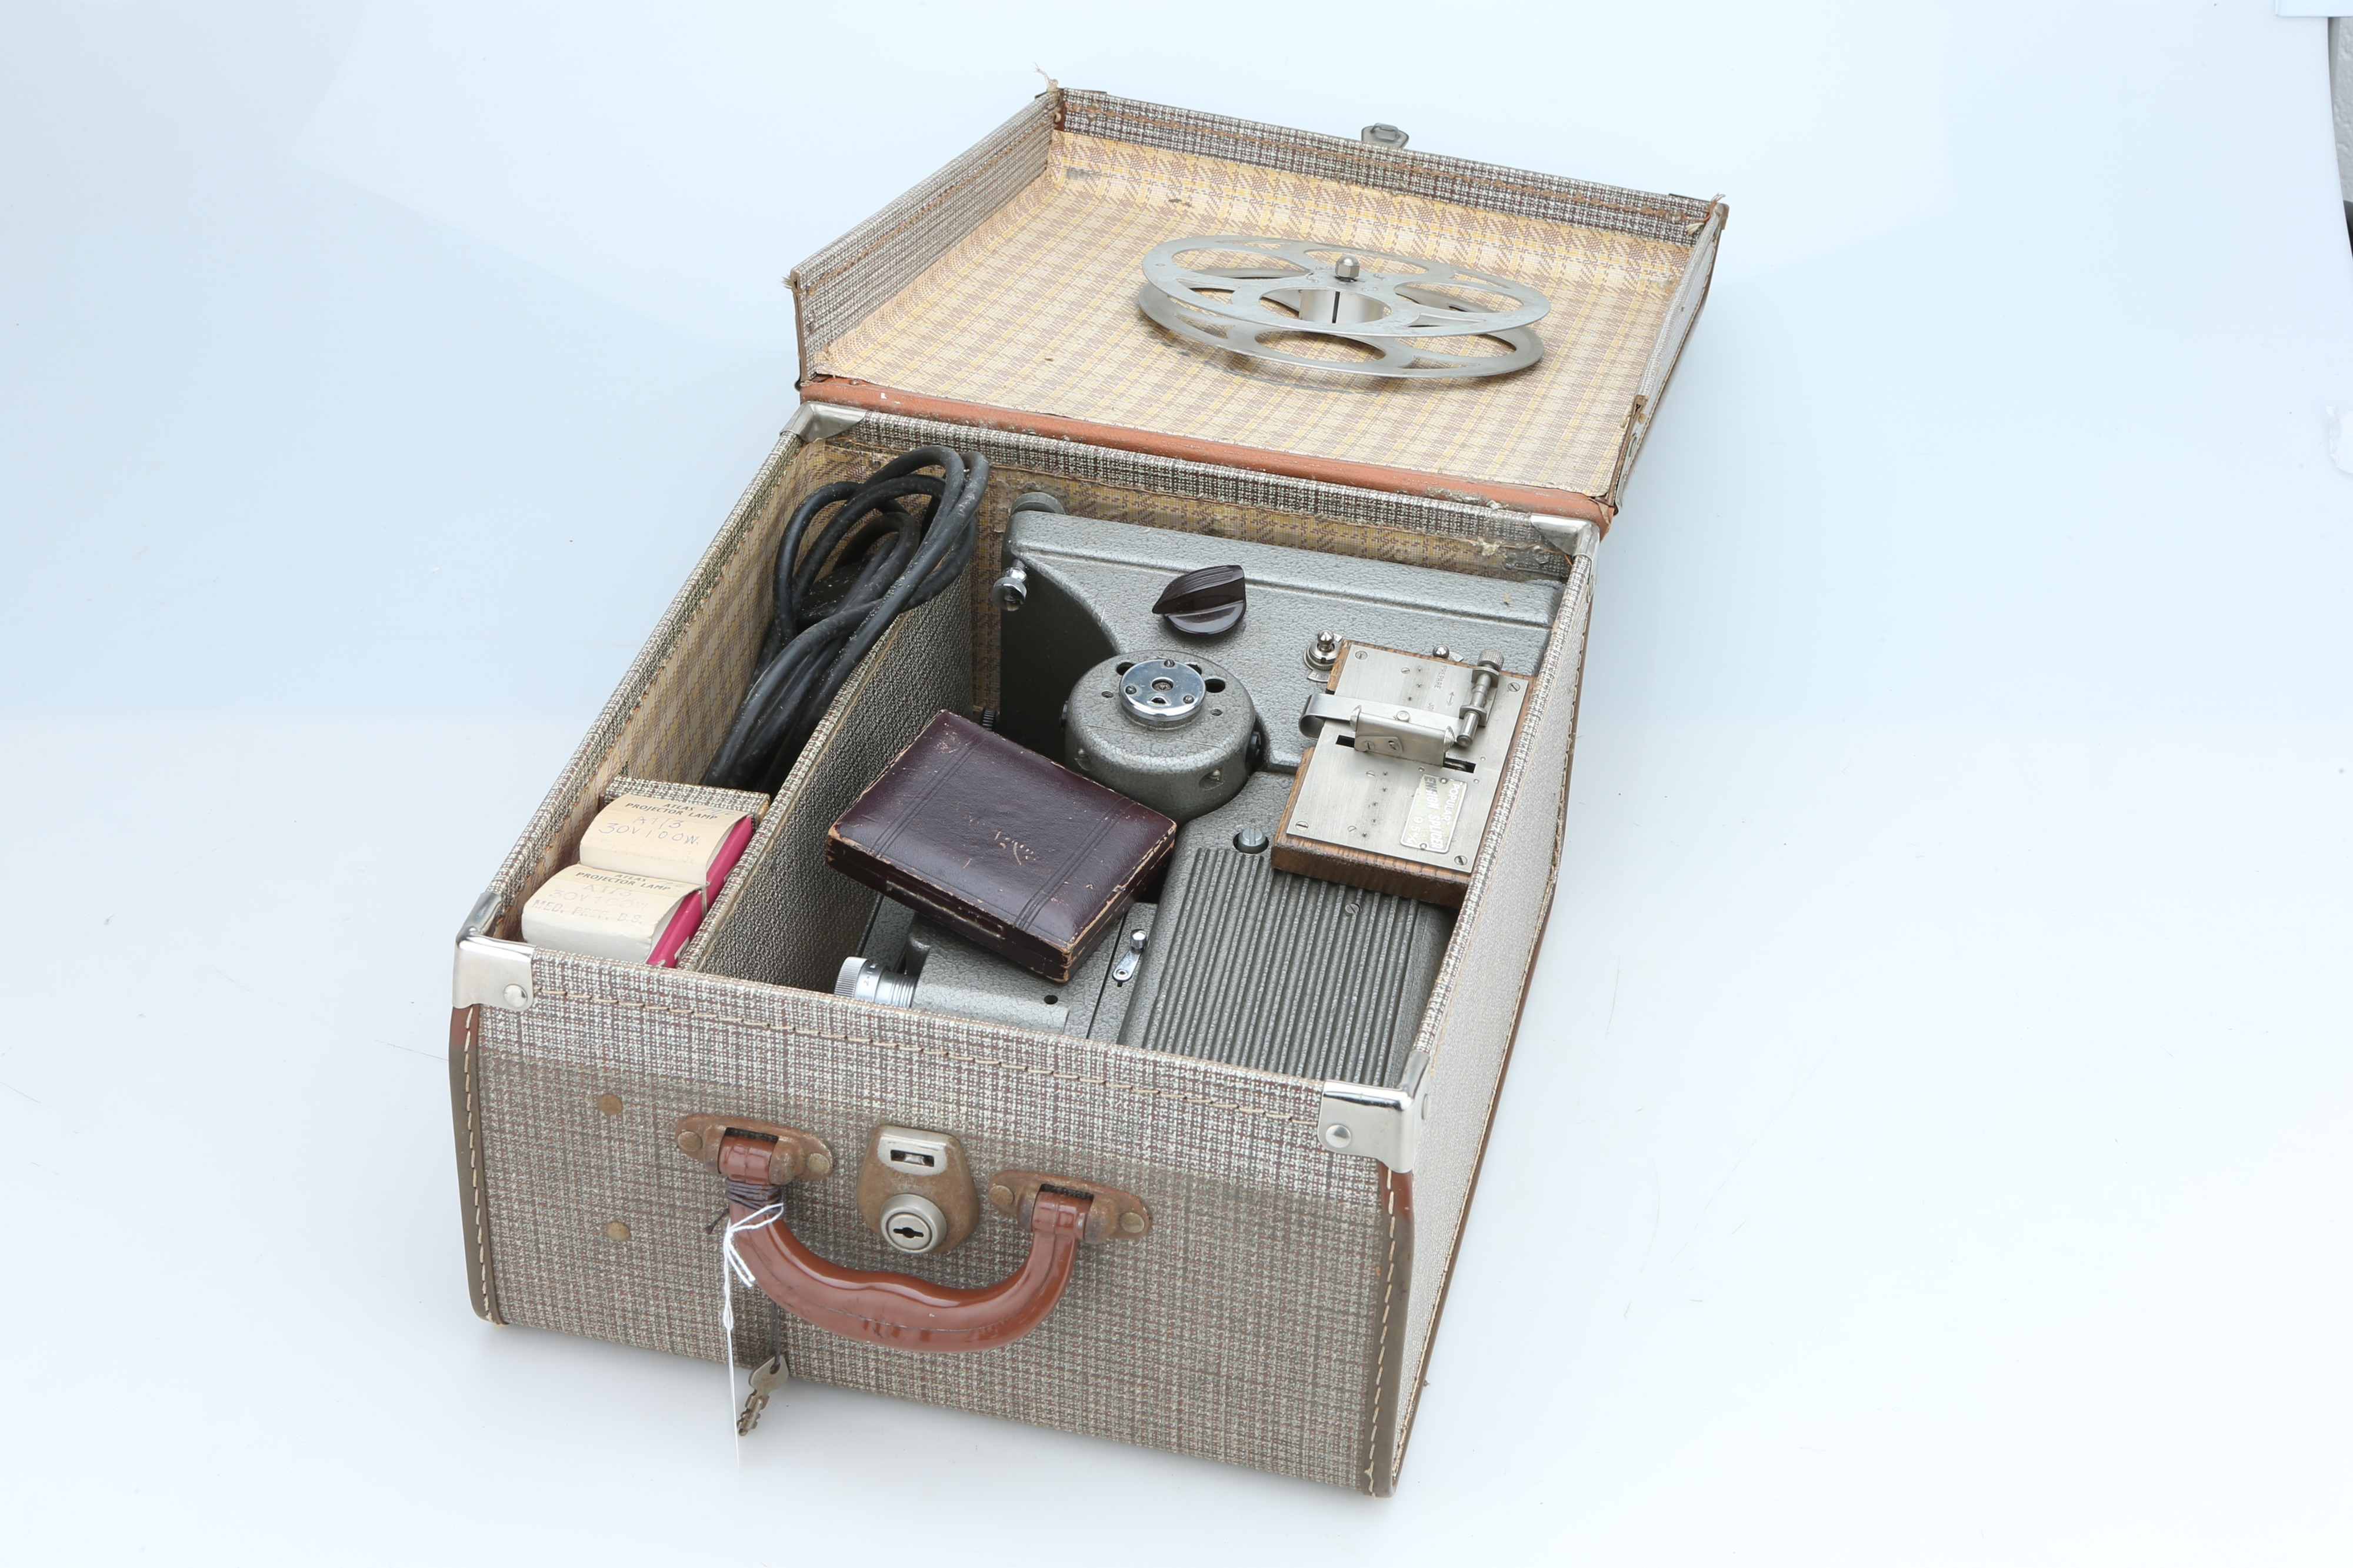 A Spectro Cine Projector, - Image 2 of 3